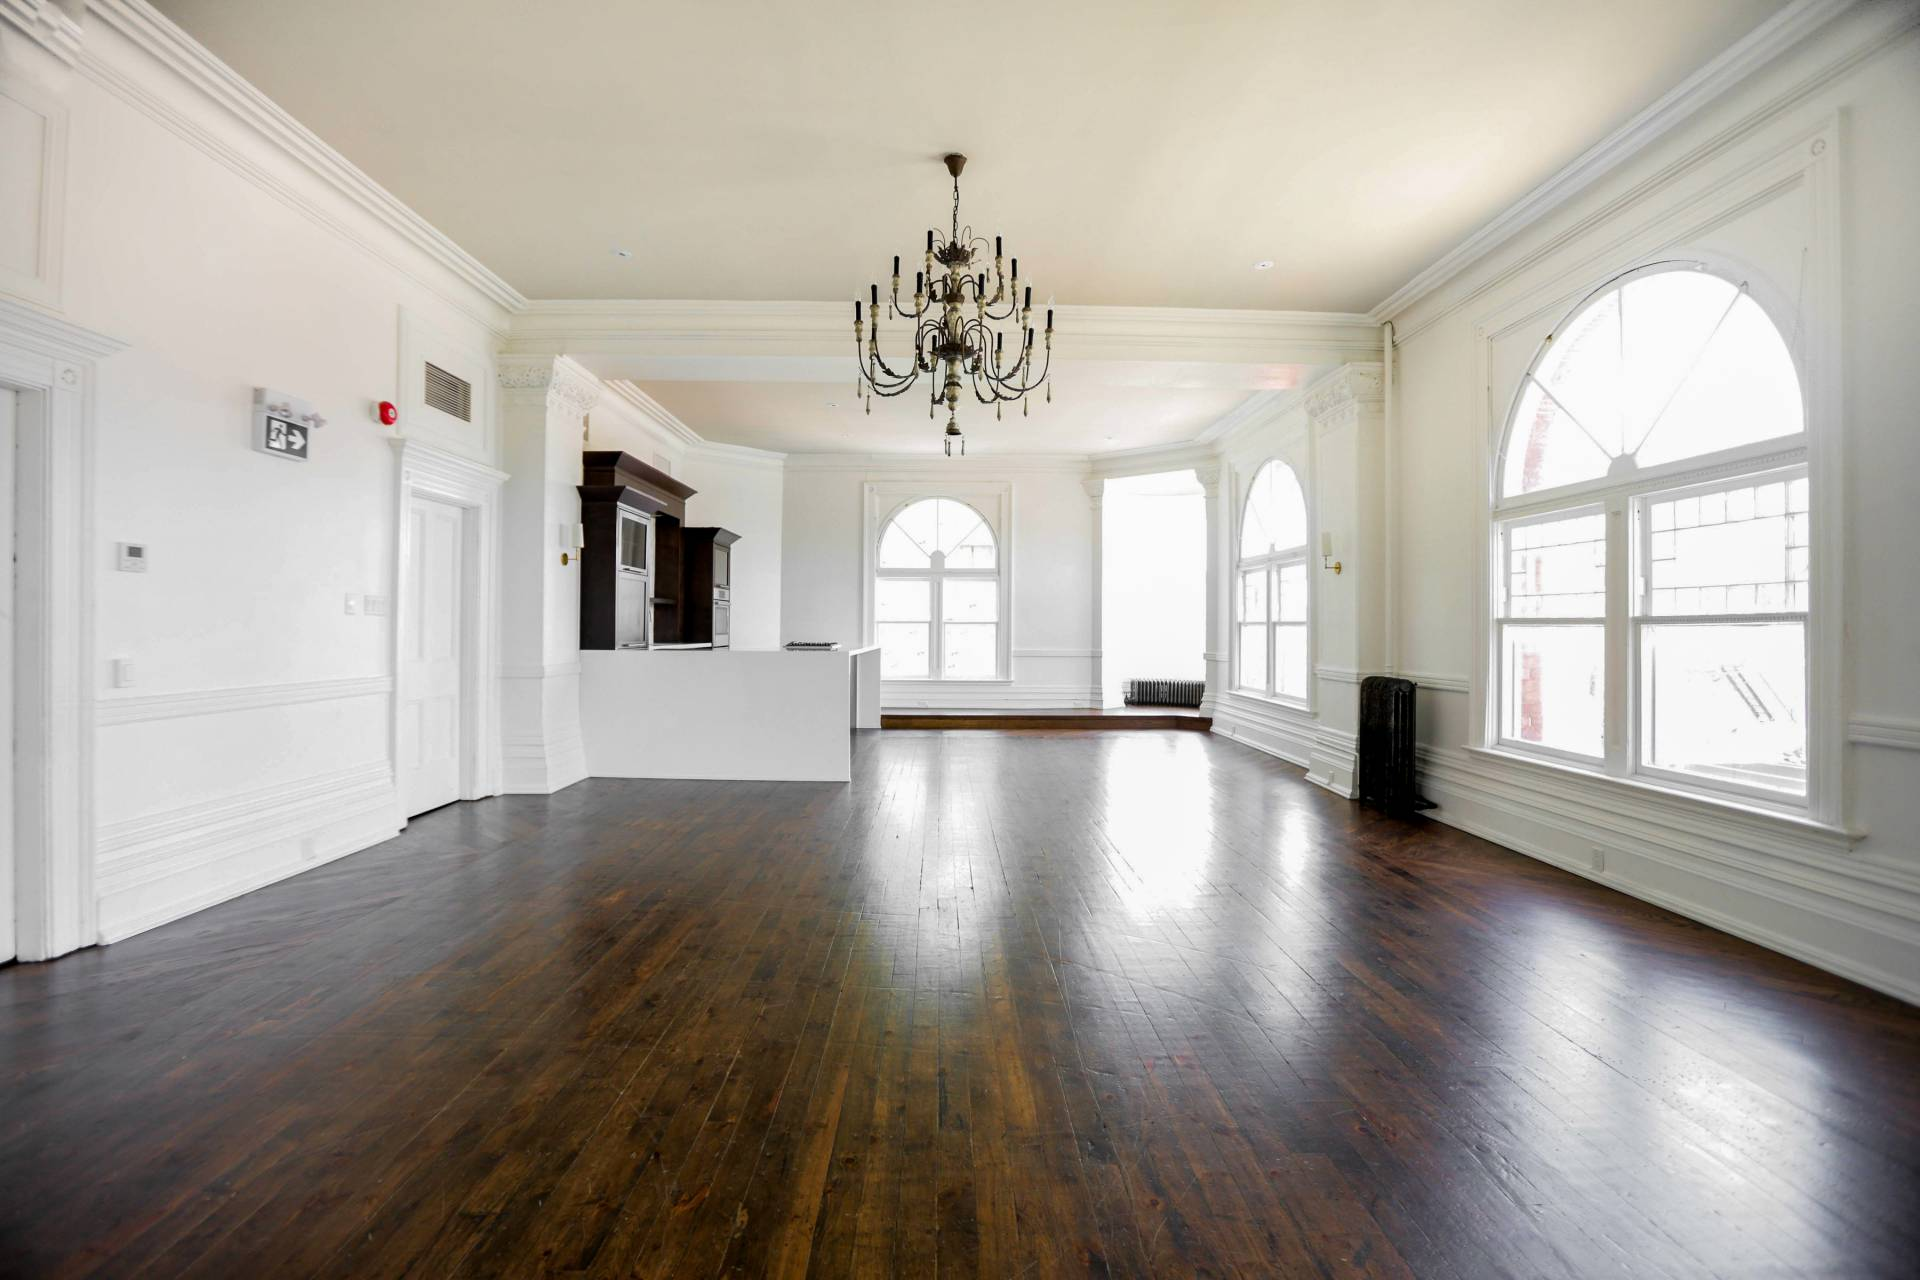 Dark Brown Hardwood Floor with Bright Walls and a chandelier